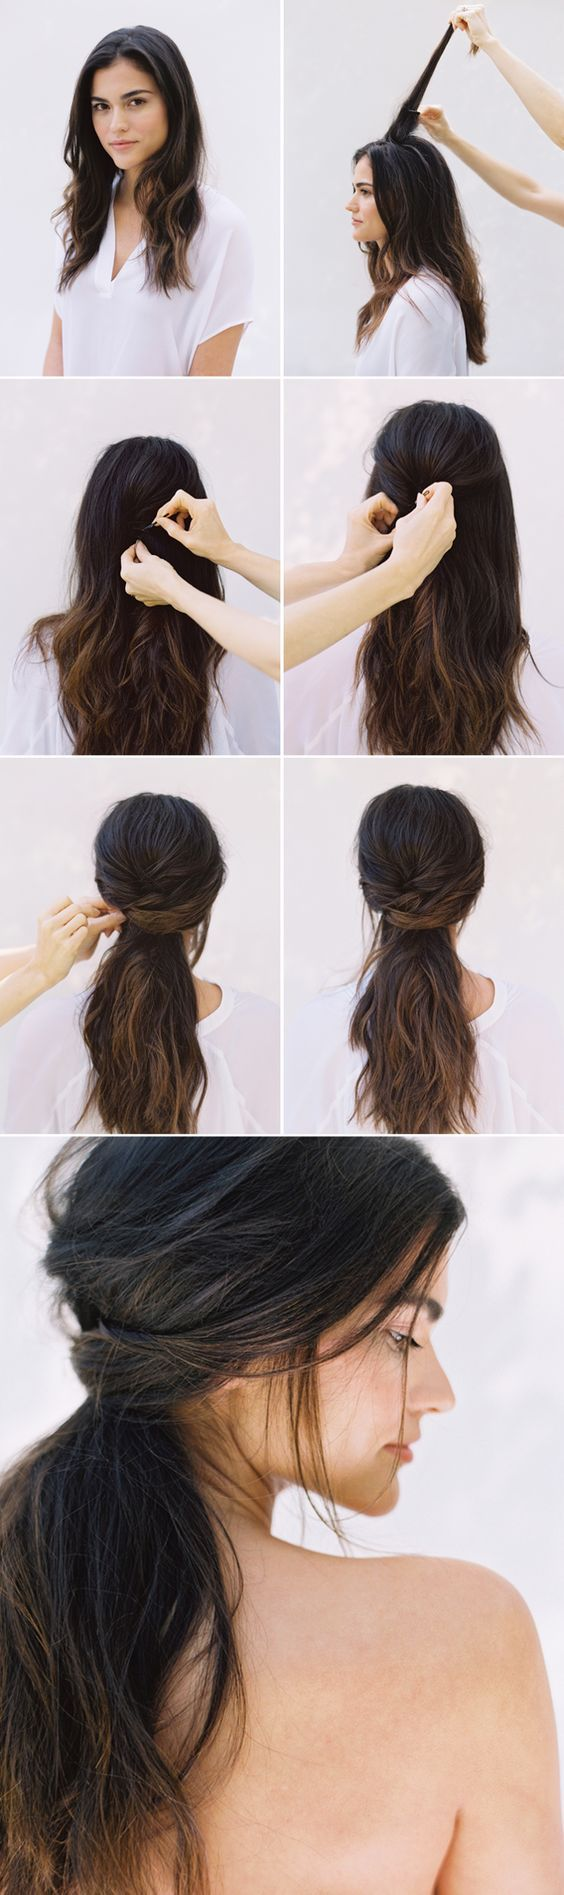 classy and simple hairstyle ideas for thick hair | simple